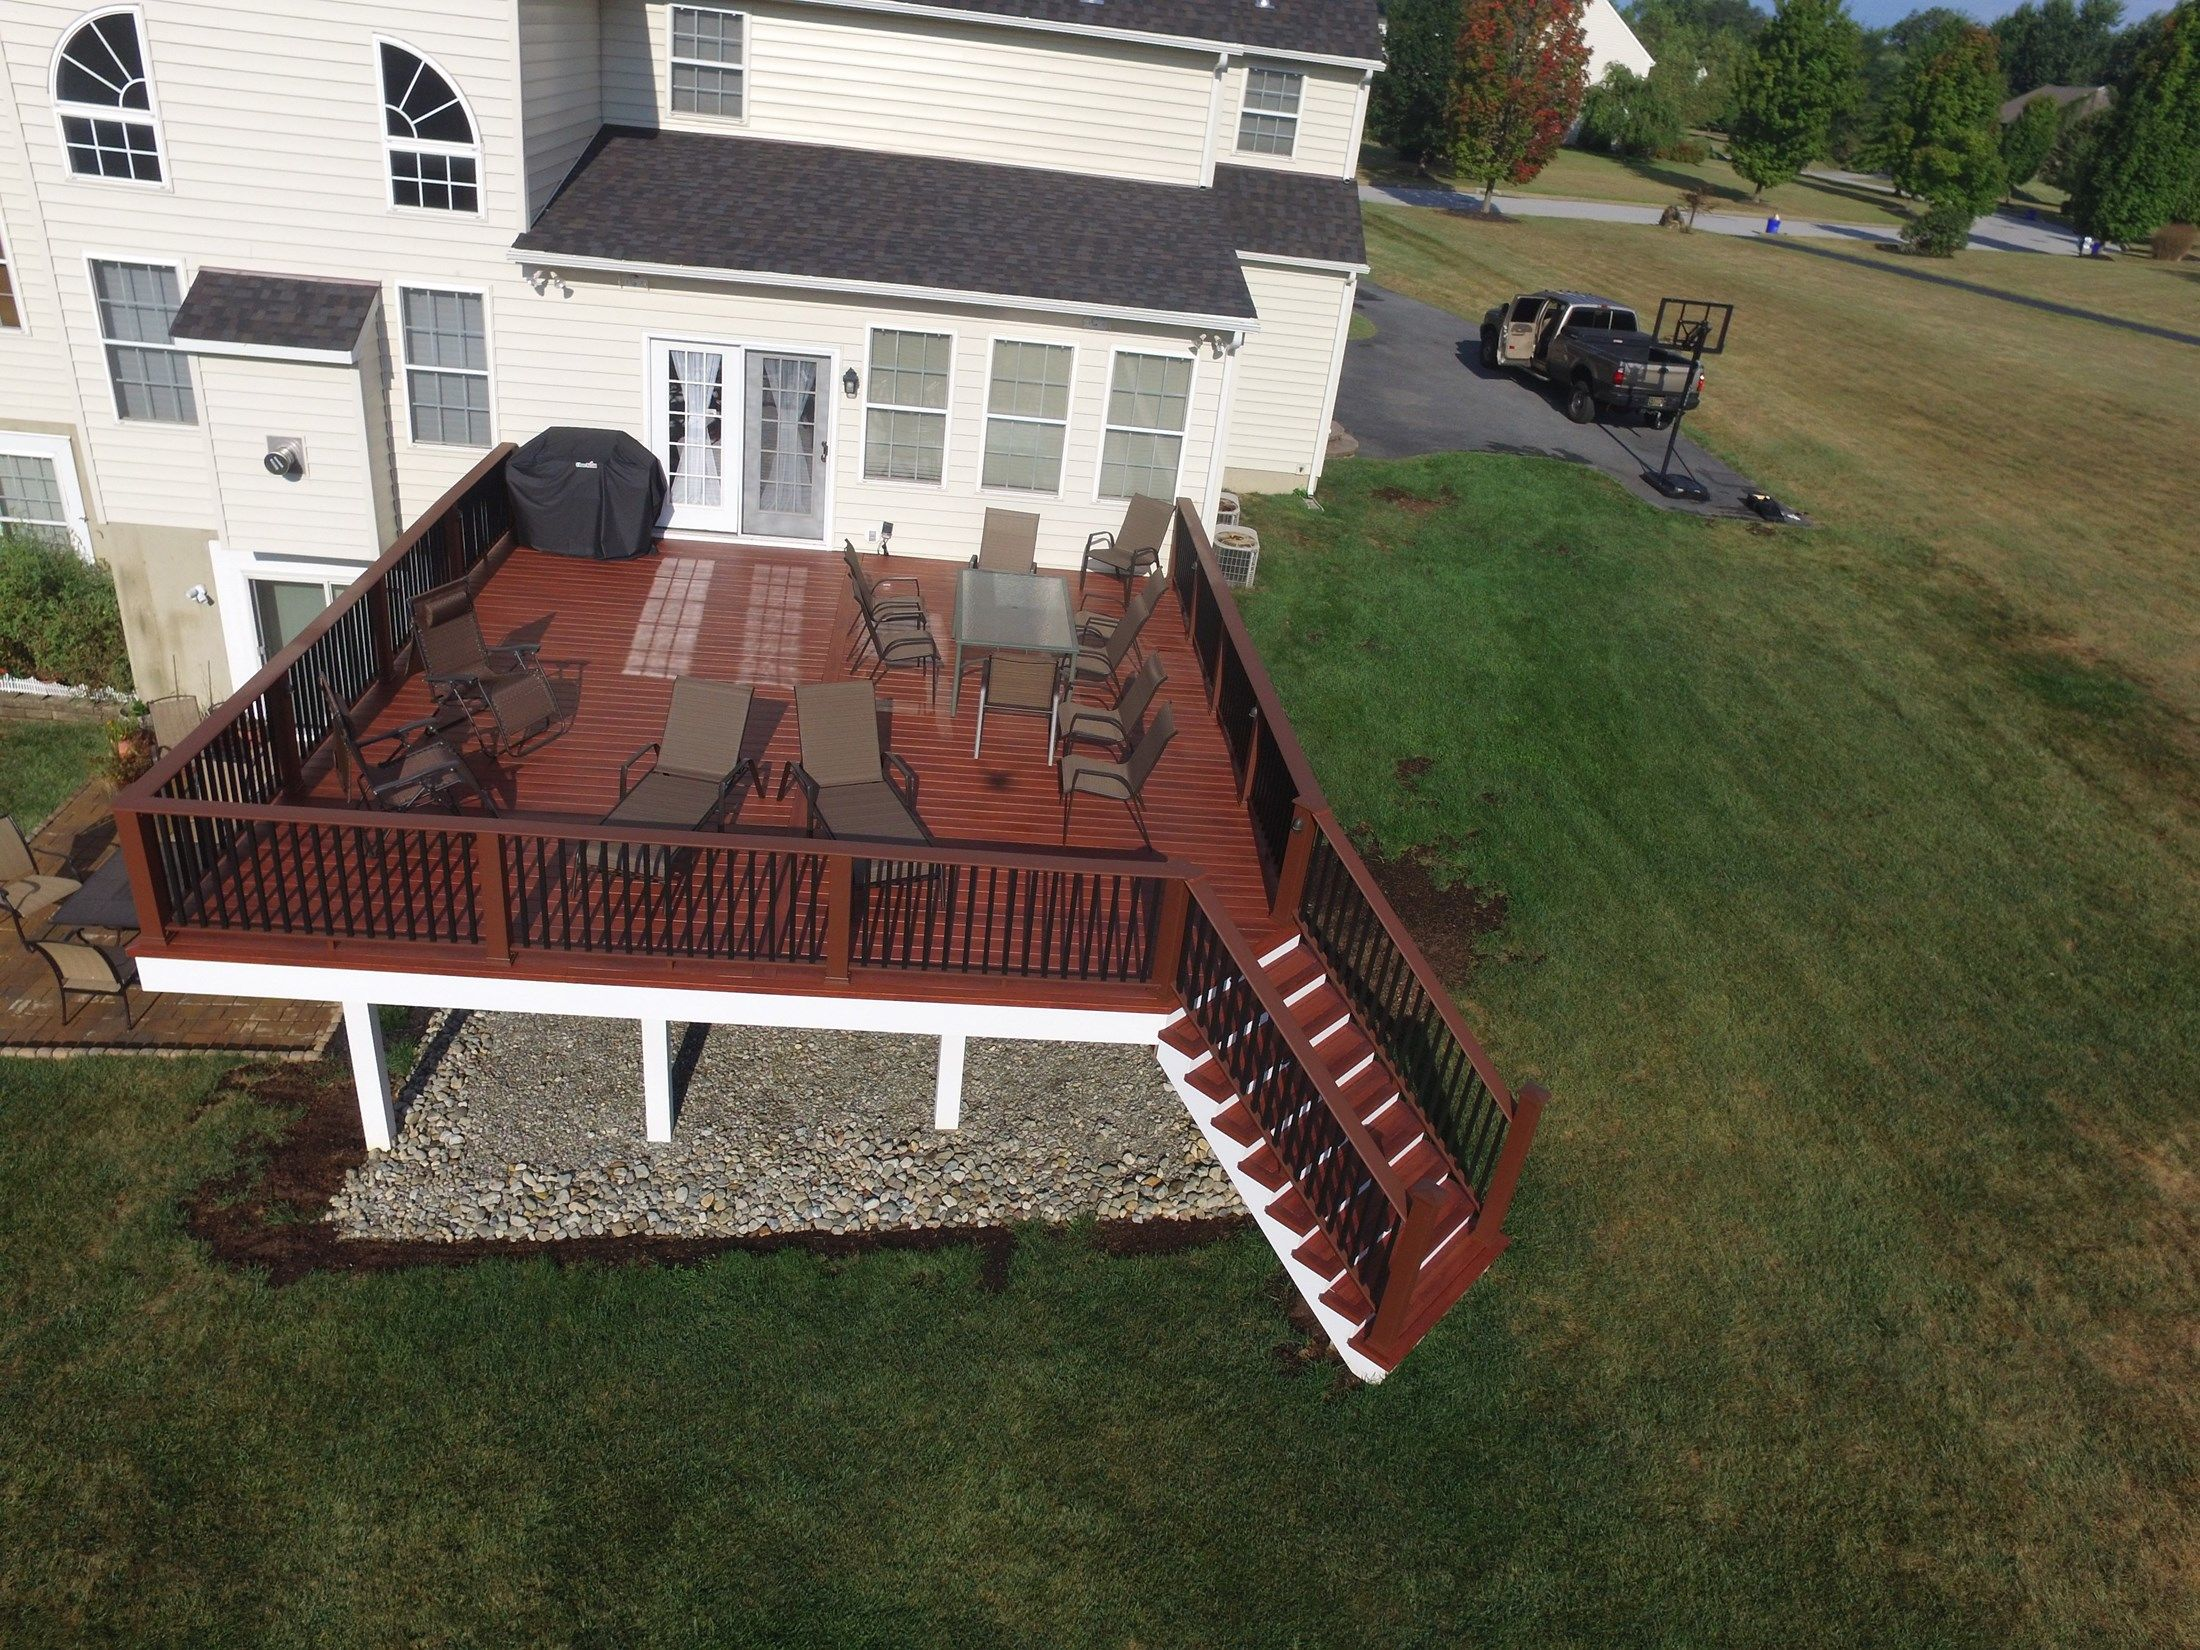 Zuri Decking complete with Timbertech Railing - Picture 6503